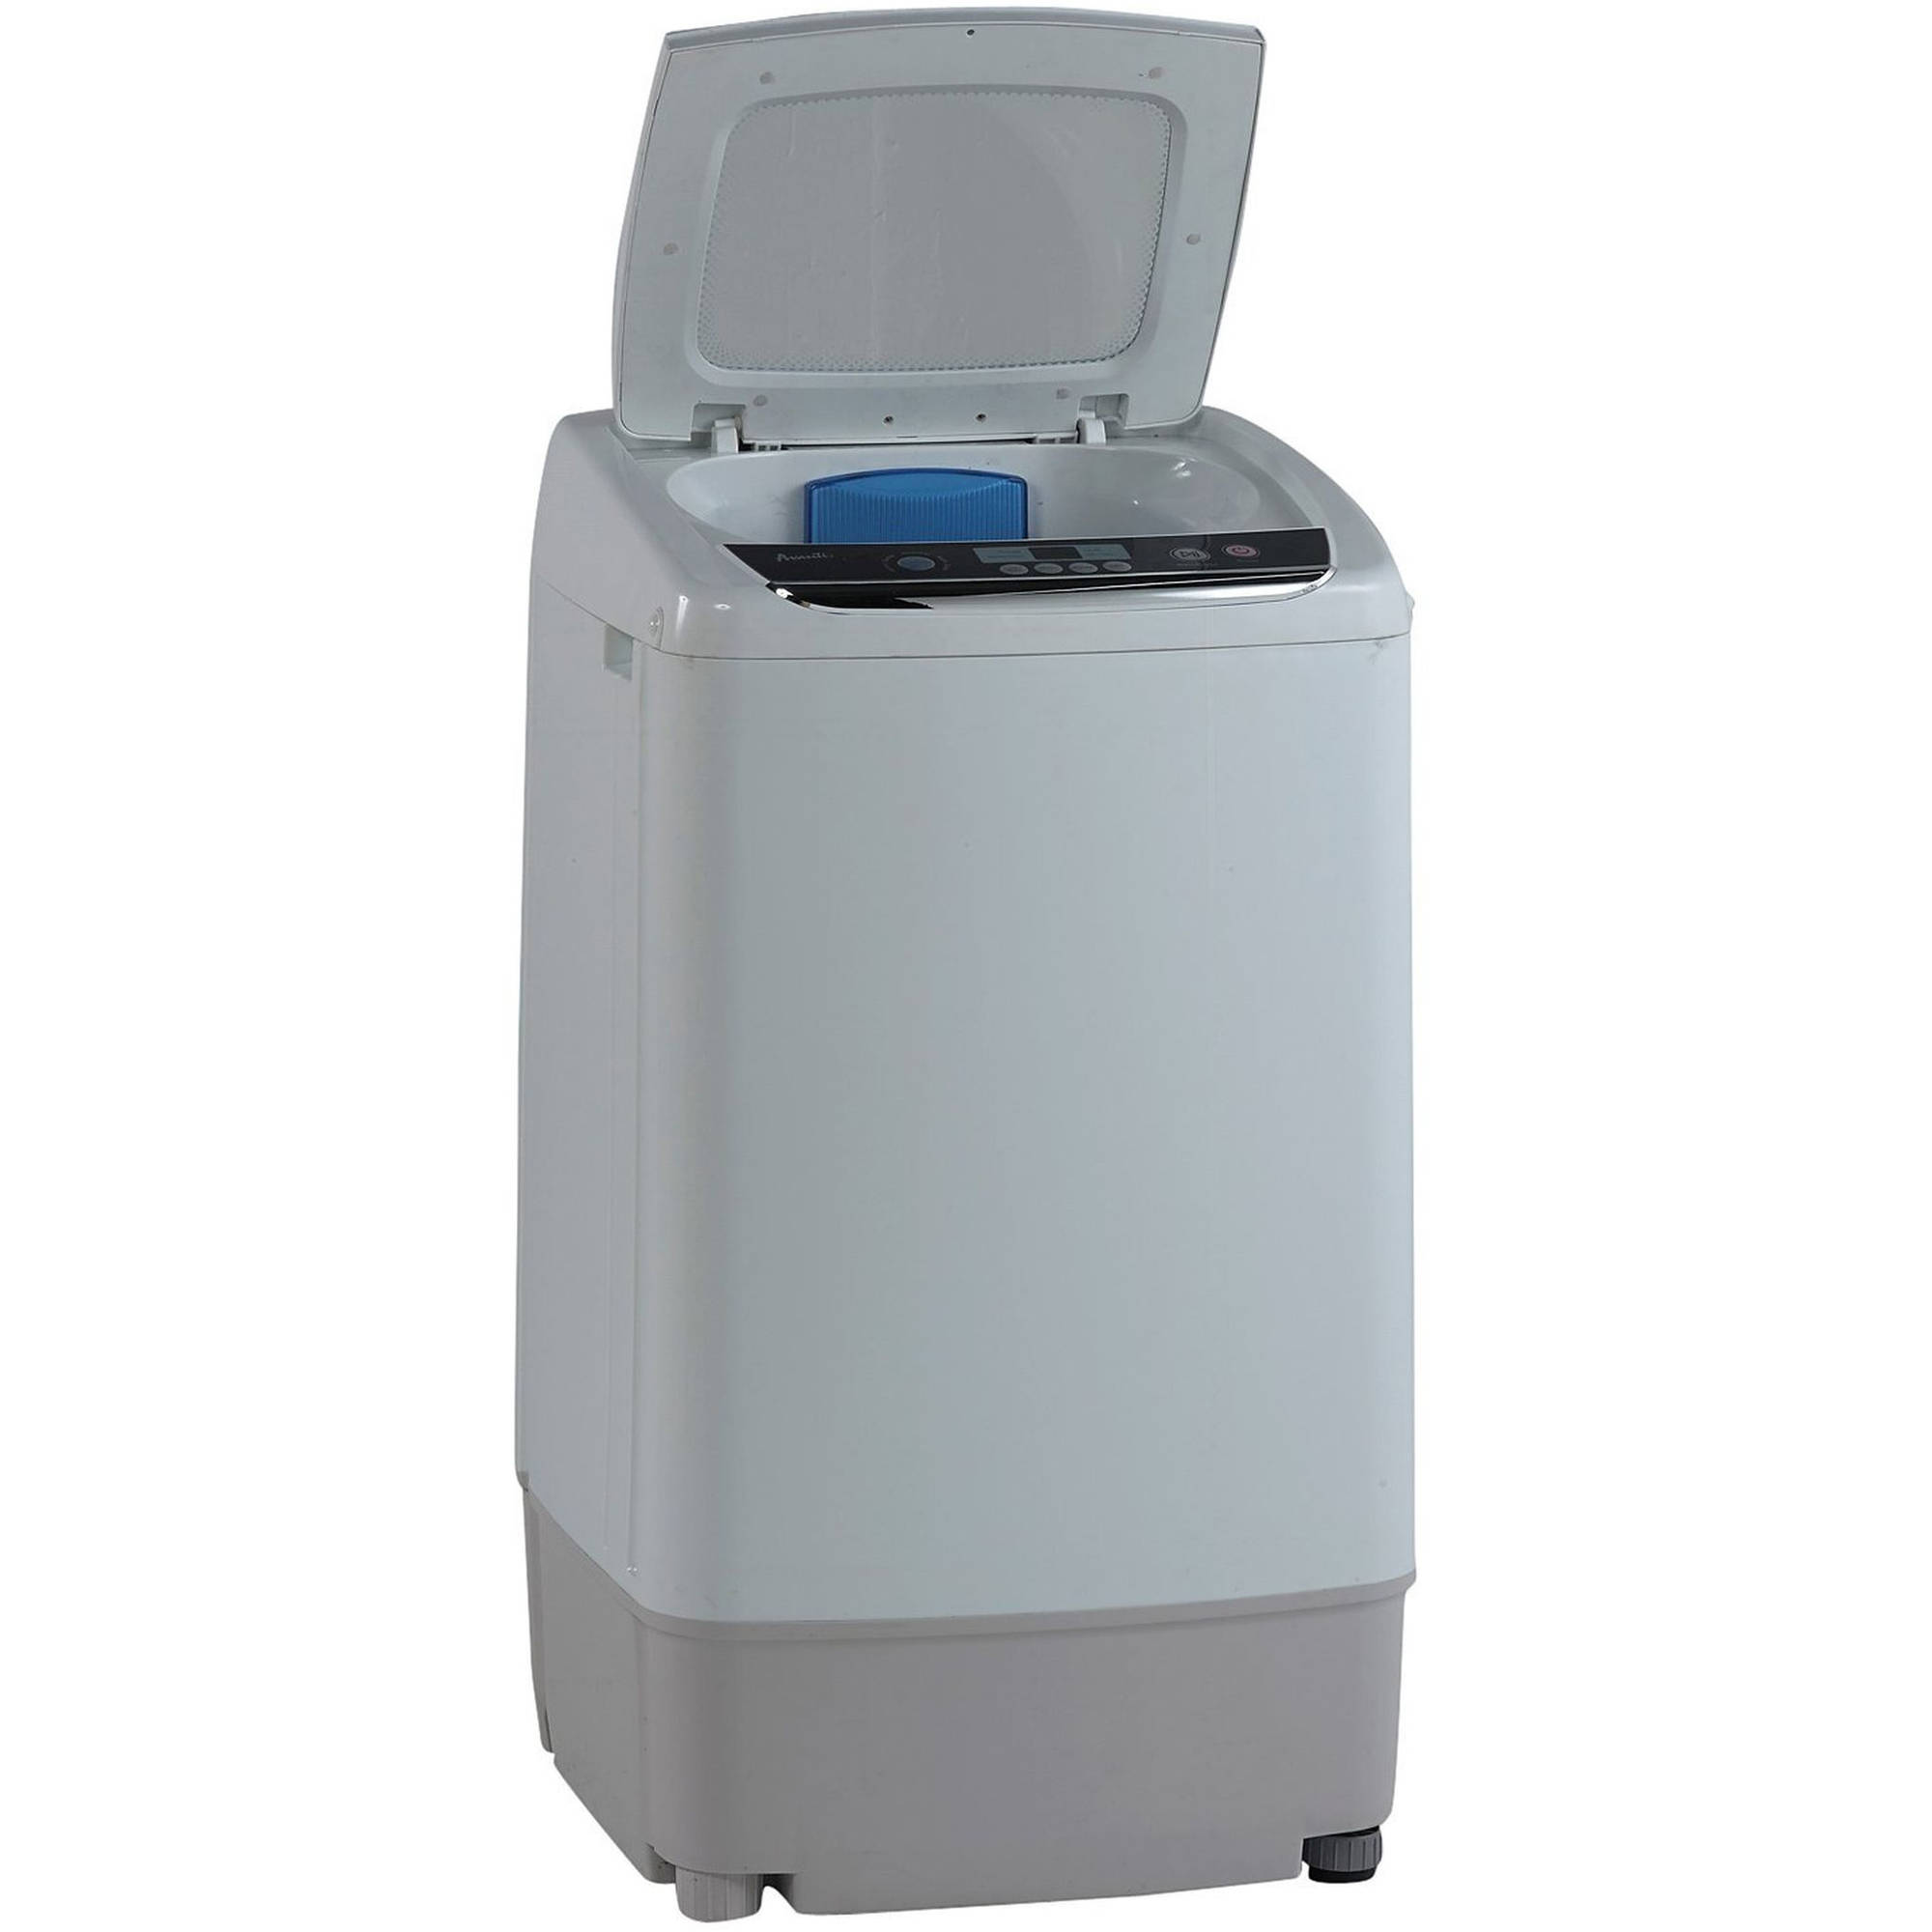 Best Portable Washers For Apartments Pictures - Decorating Ideas ...